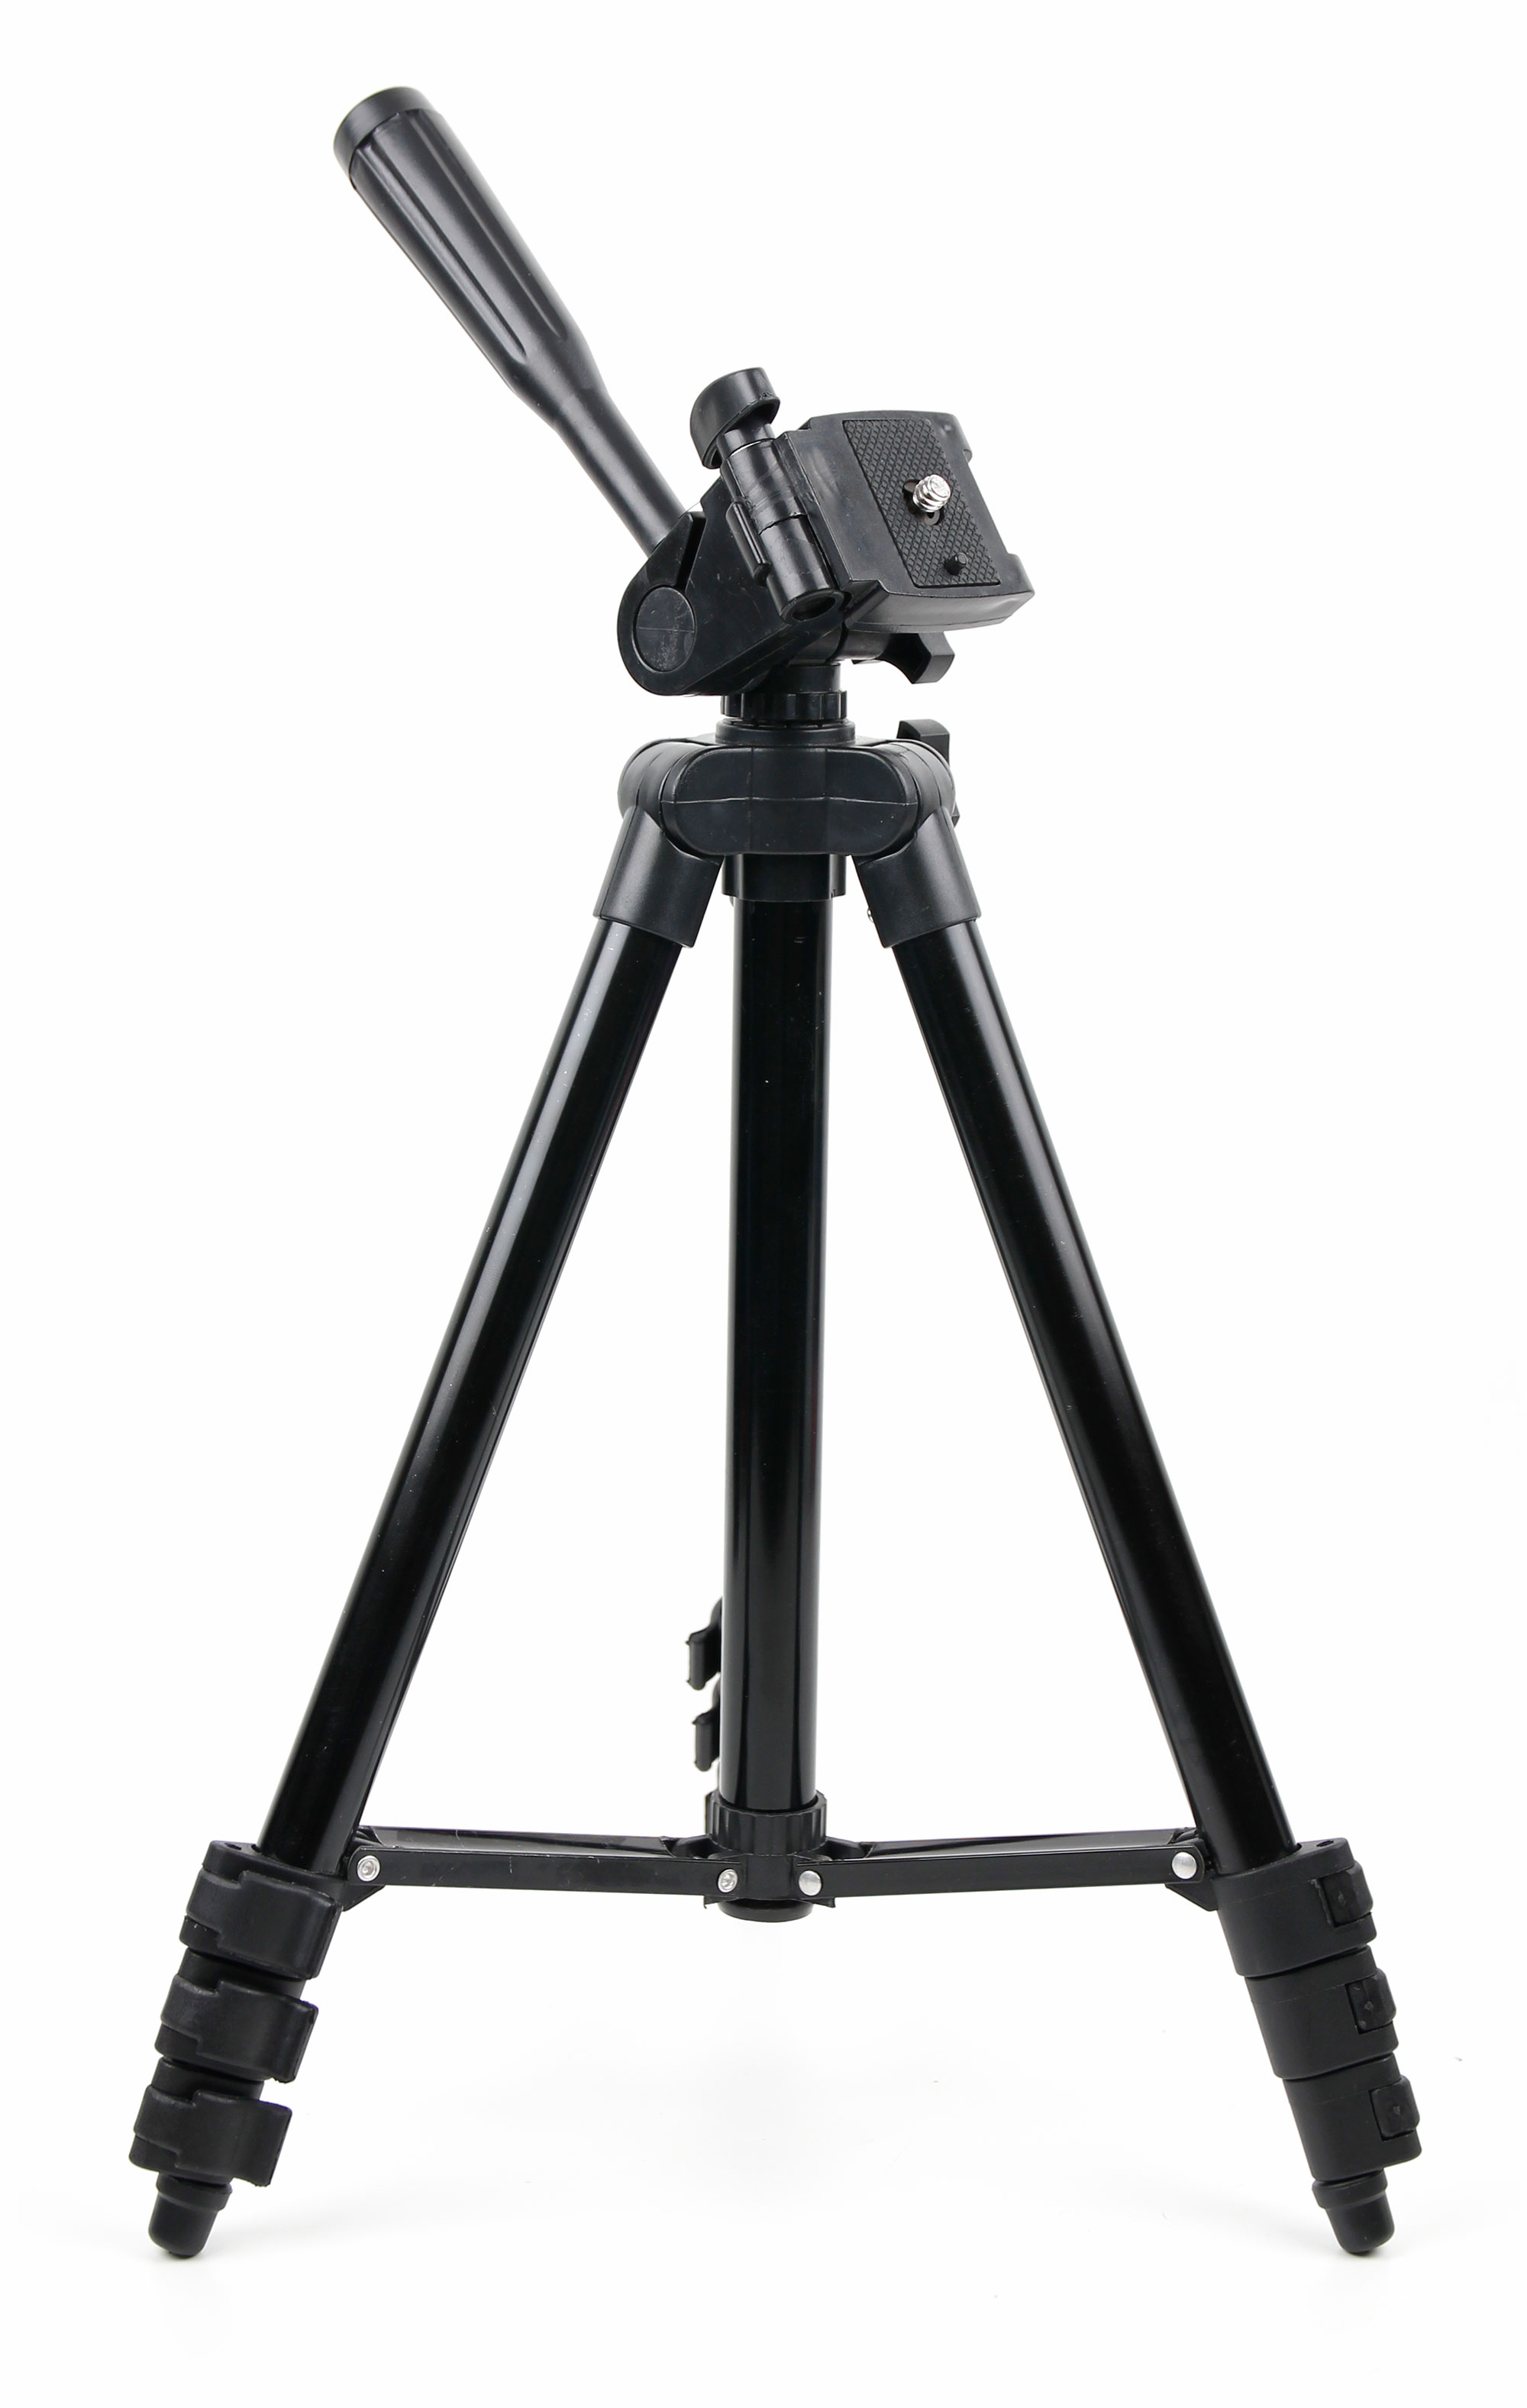 HX400V 1M Extendable Tripod W// Screw Mount for Sony DSC-HX400 Sony DSC-HX60